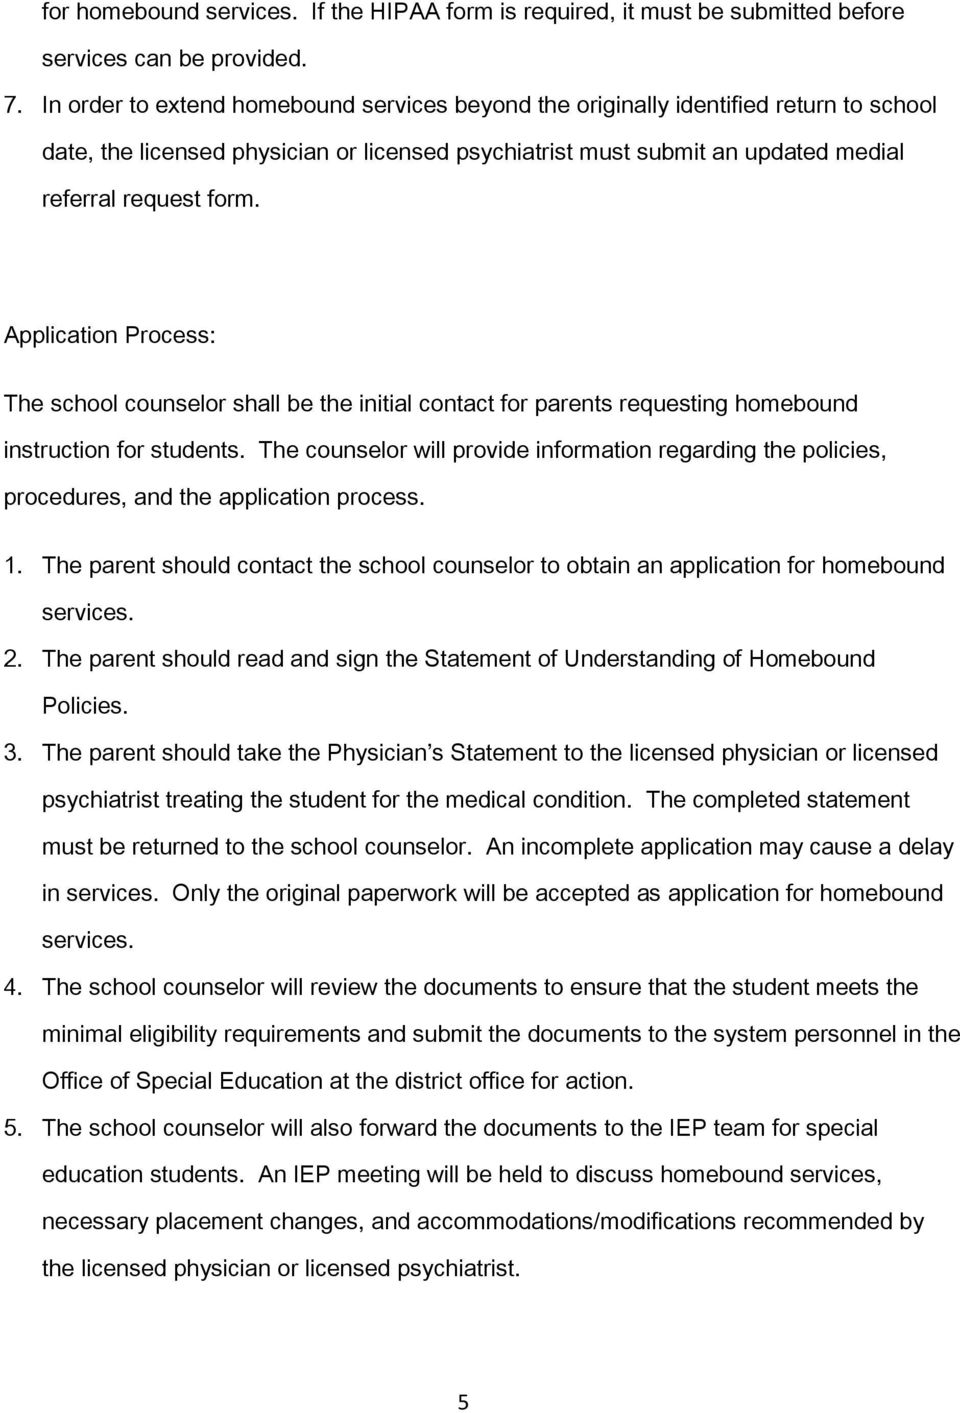 Application Process: The school counselor shall be the initial contact for parents requesting homebound instruction for students.